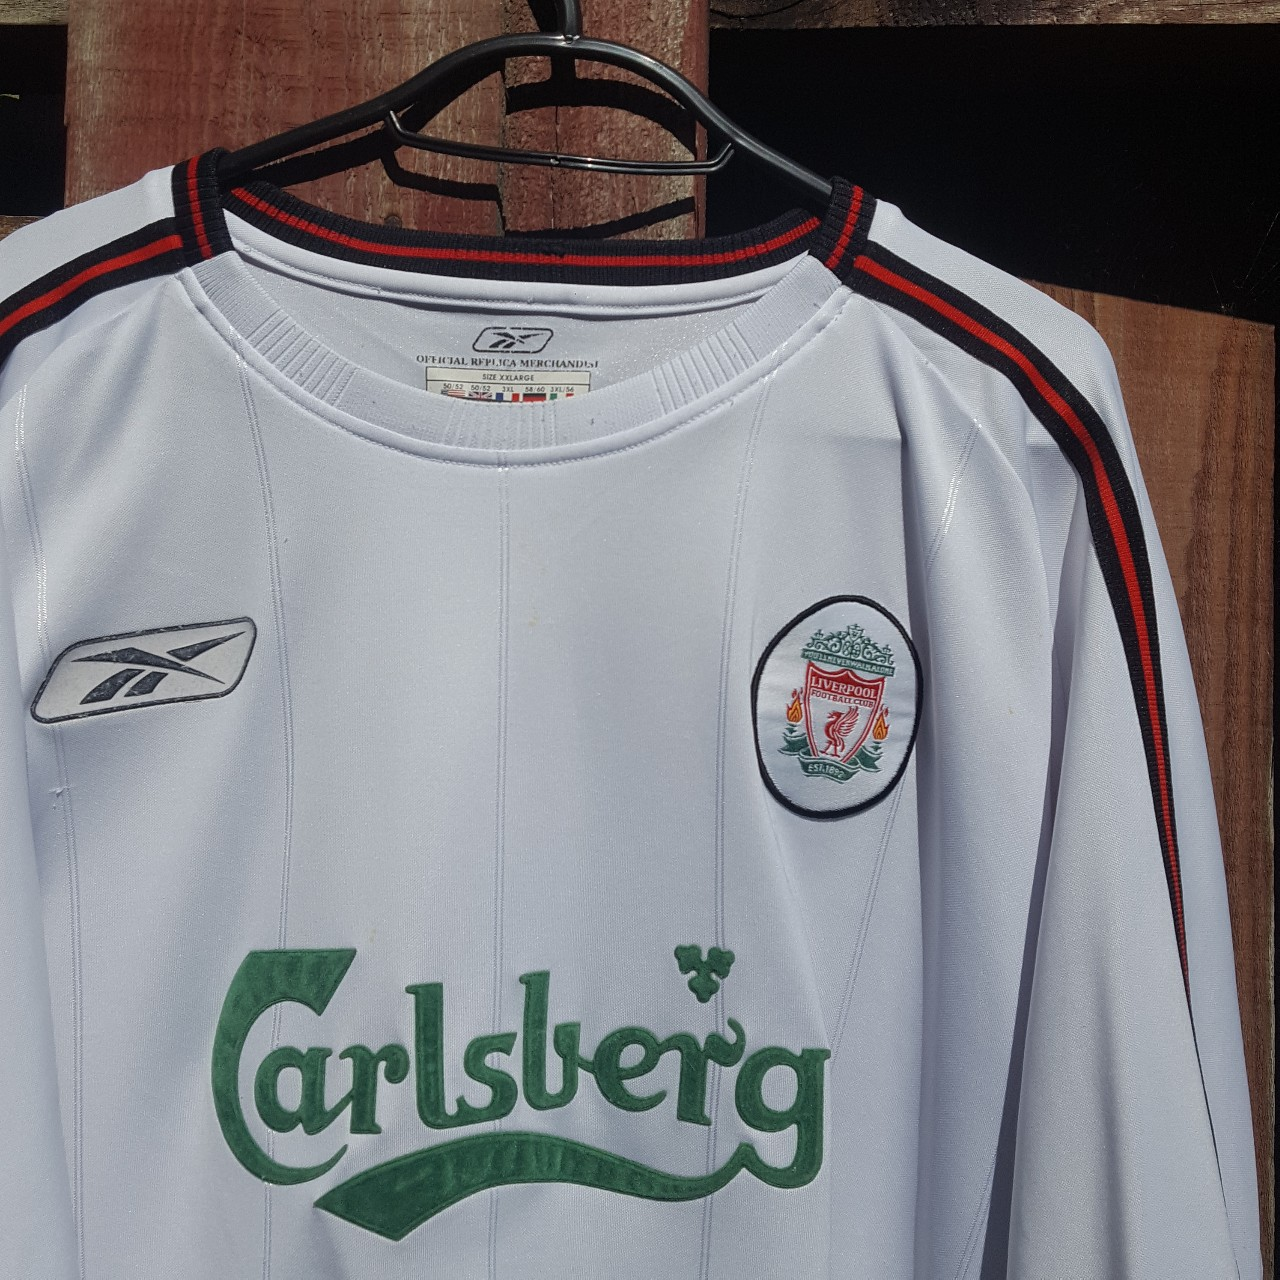 low priced ec3b9 74c50 Vintage Liverpool kit - iconic carlsberg sponsor... - Depop